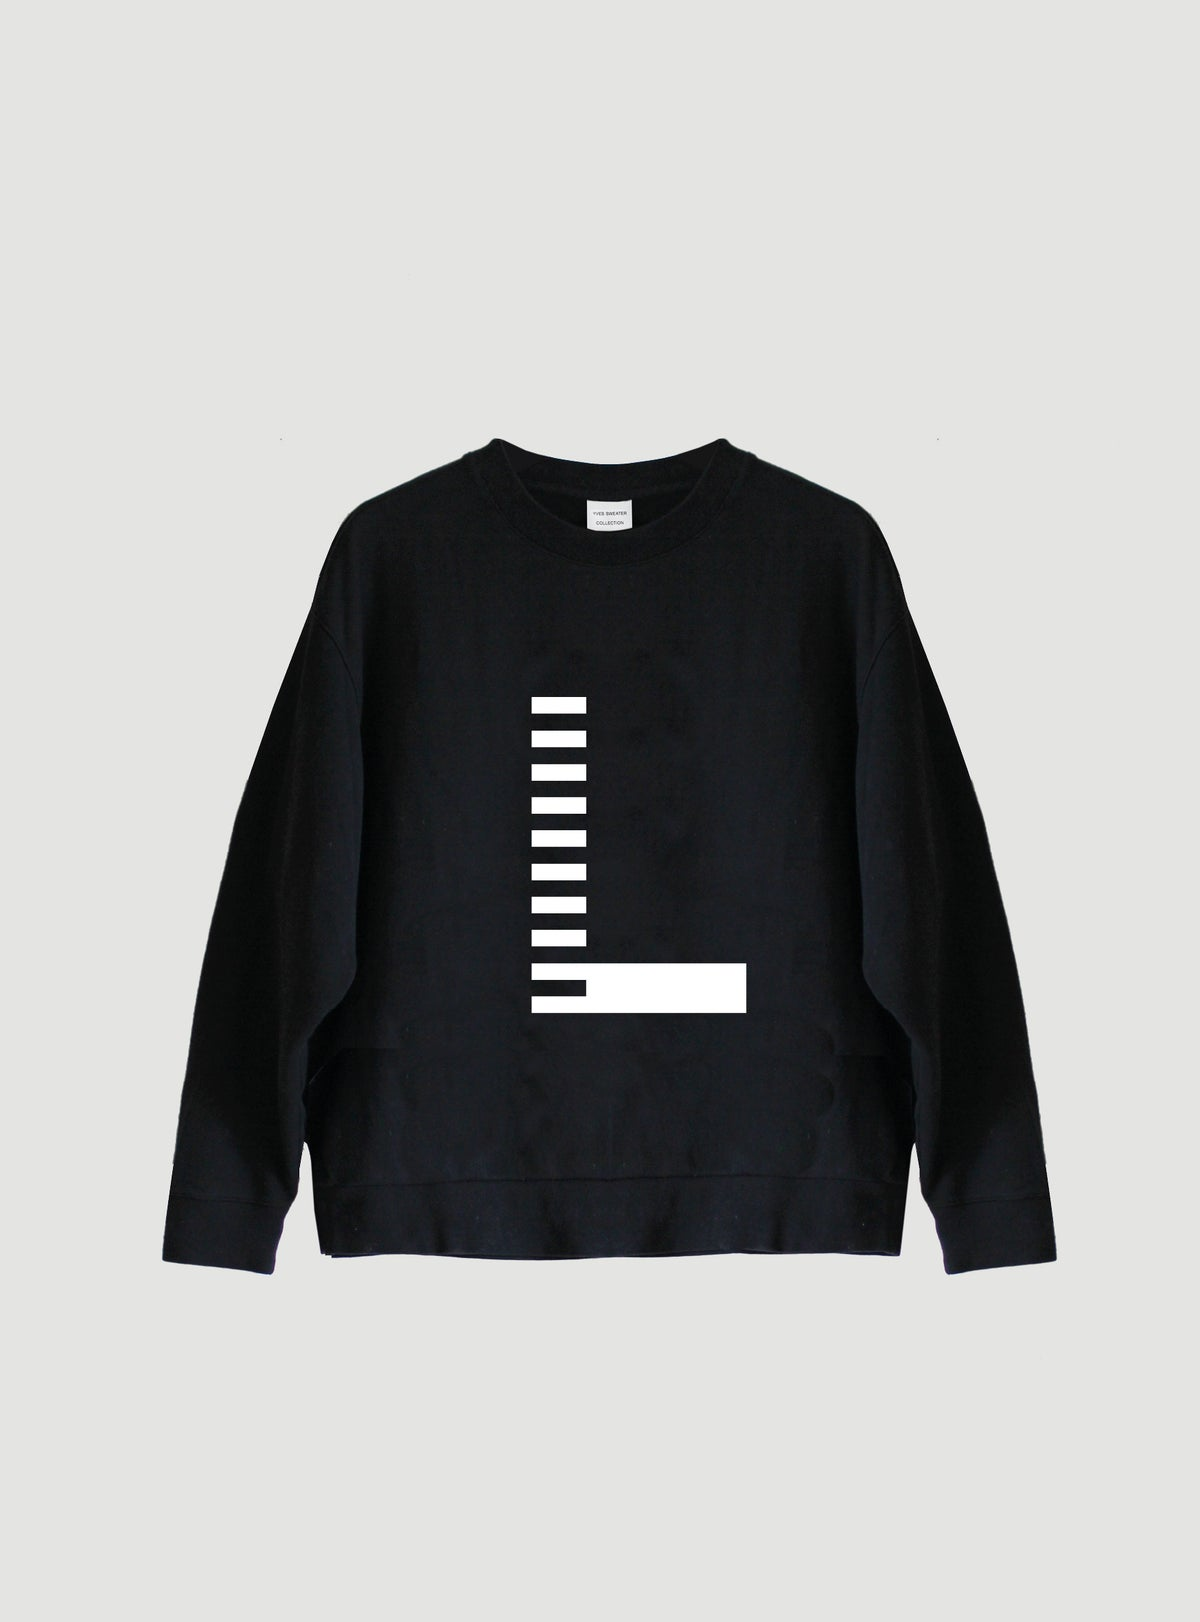 Image of L Sweater